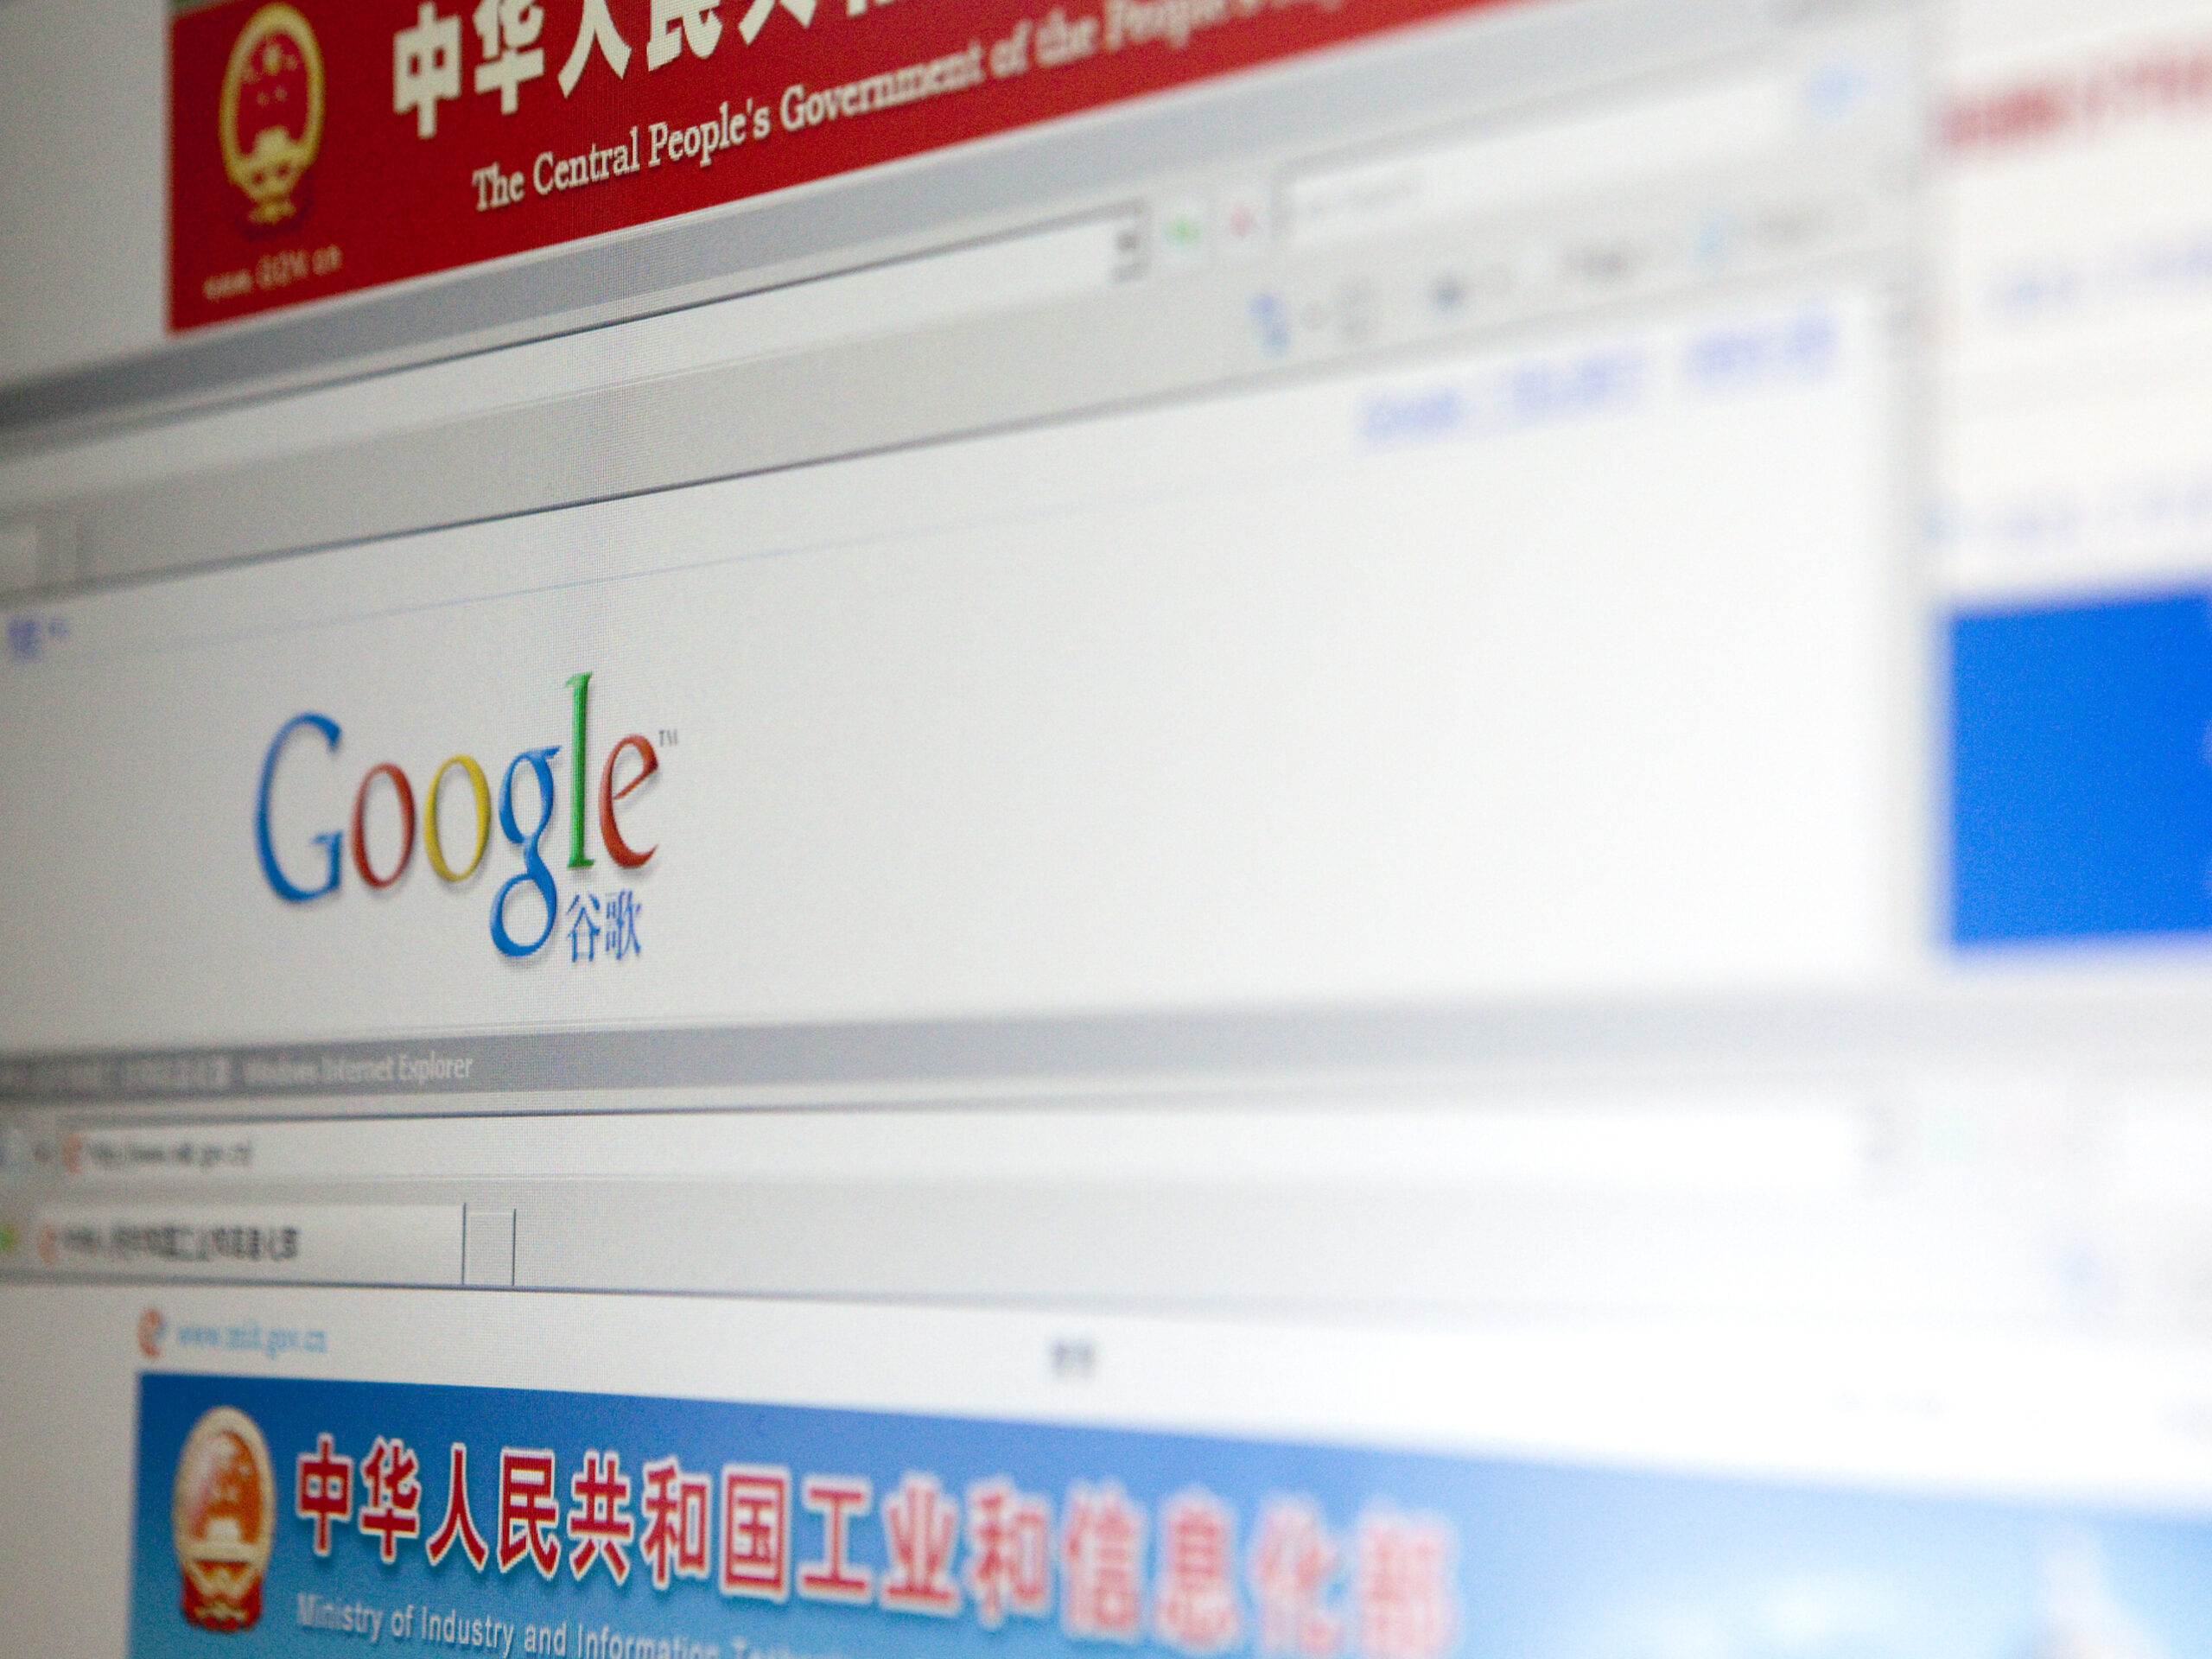 Back behind the Great Firewall as spooked China boosts its data security industry